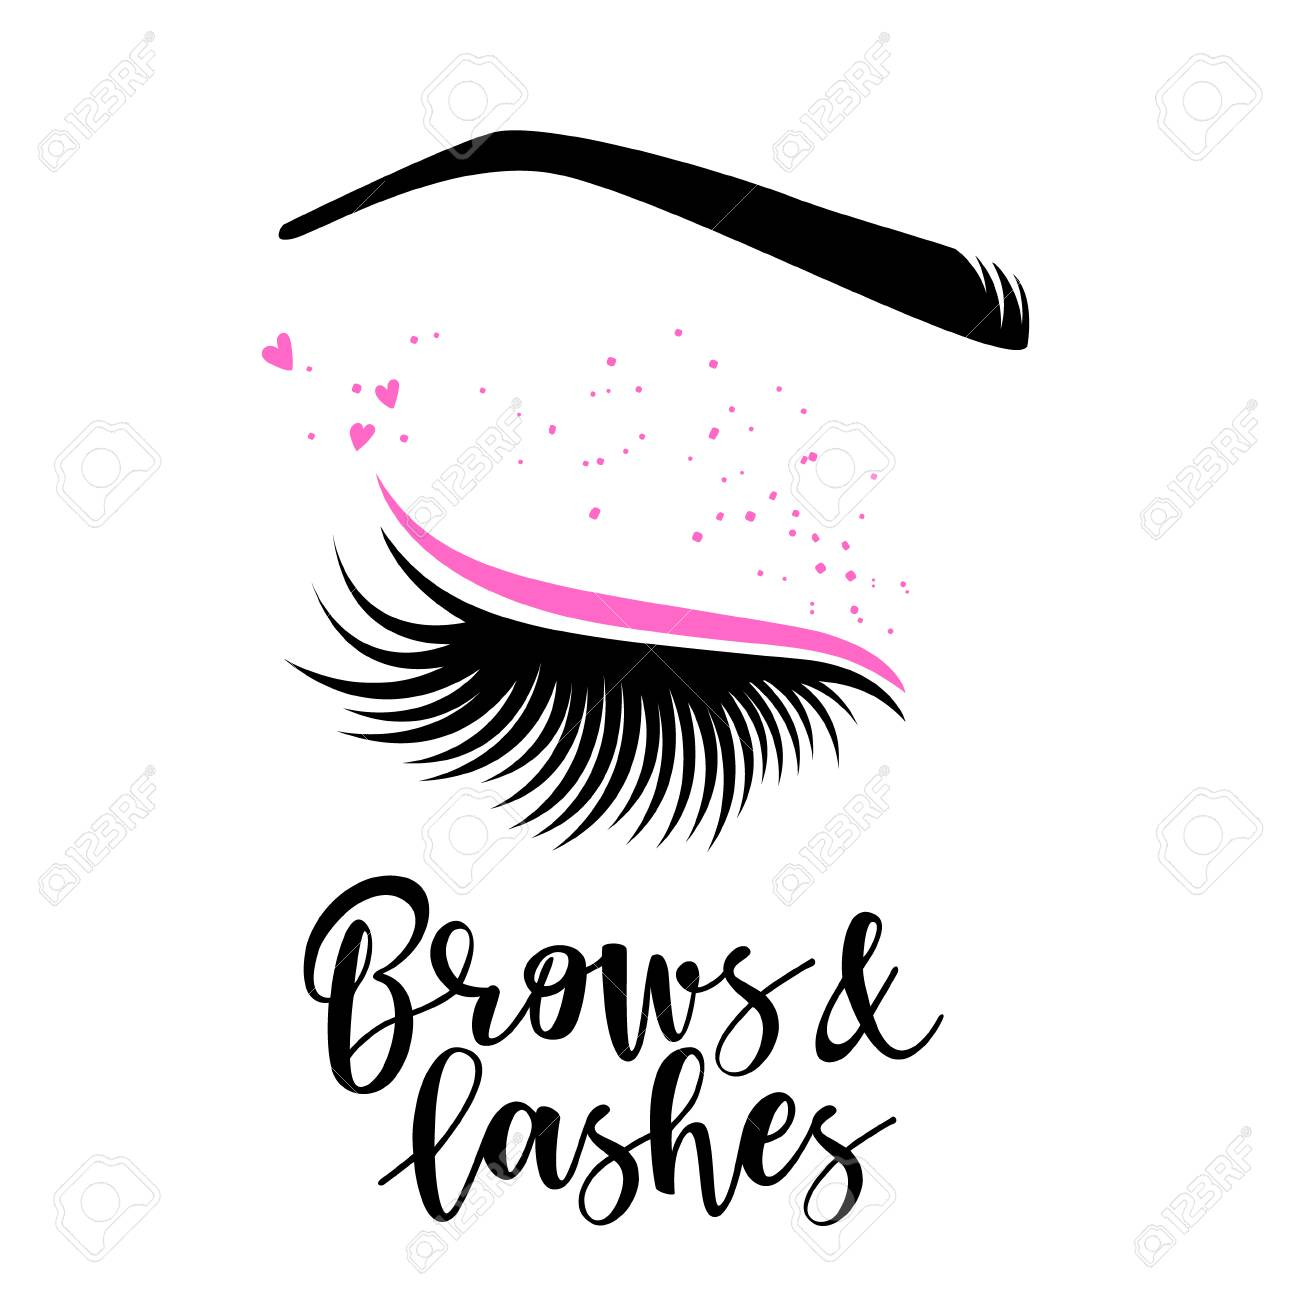 9fe5aed5b31 Brows and lashes lettering. Vector illustration of lashes. For beauty  salon, lash extensions